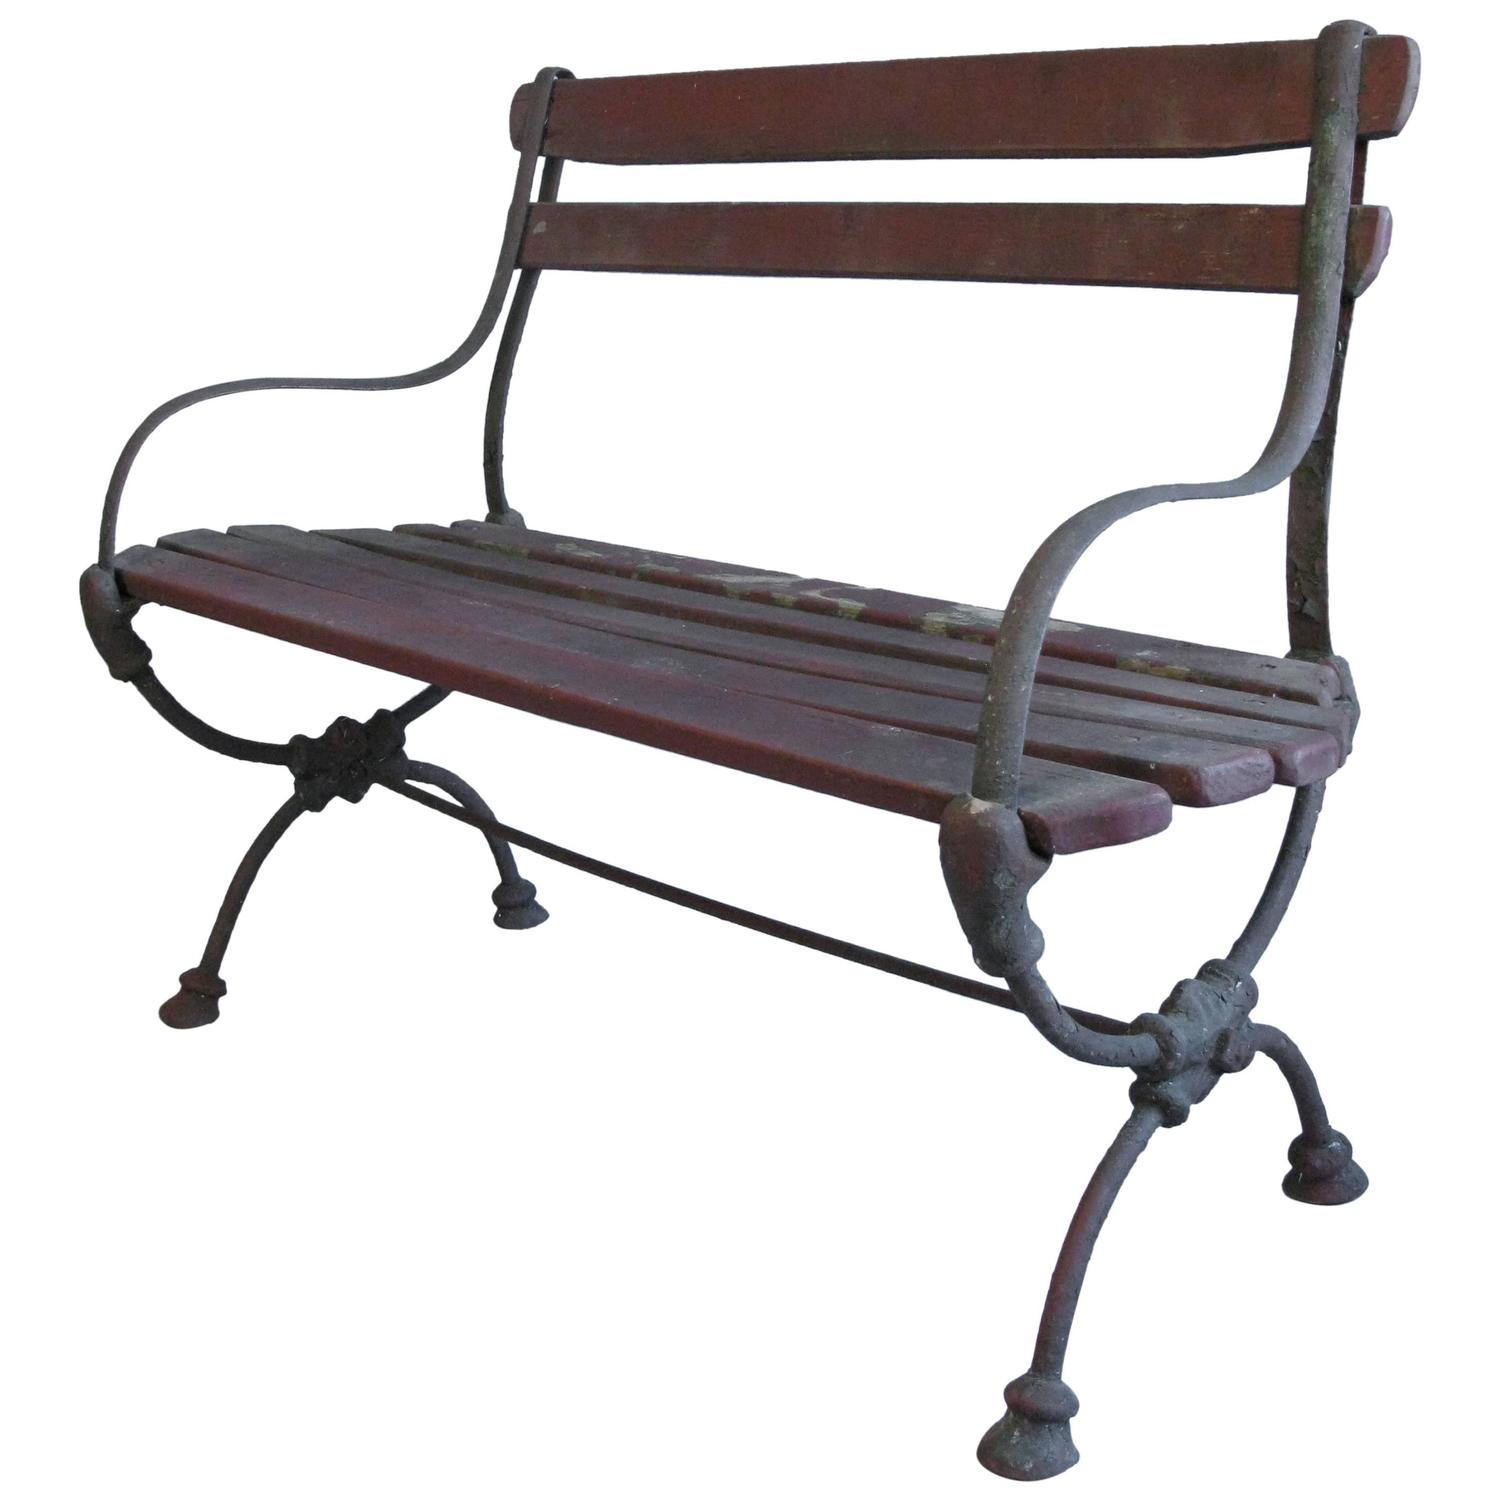 19th century wood and iron garden bench at 1stdibs - Wood and iron garden bench ...